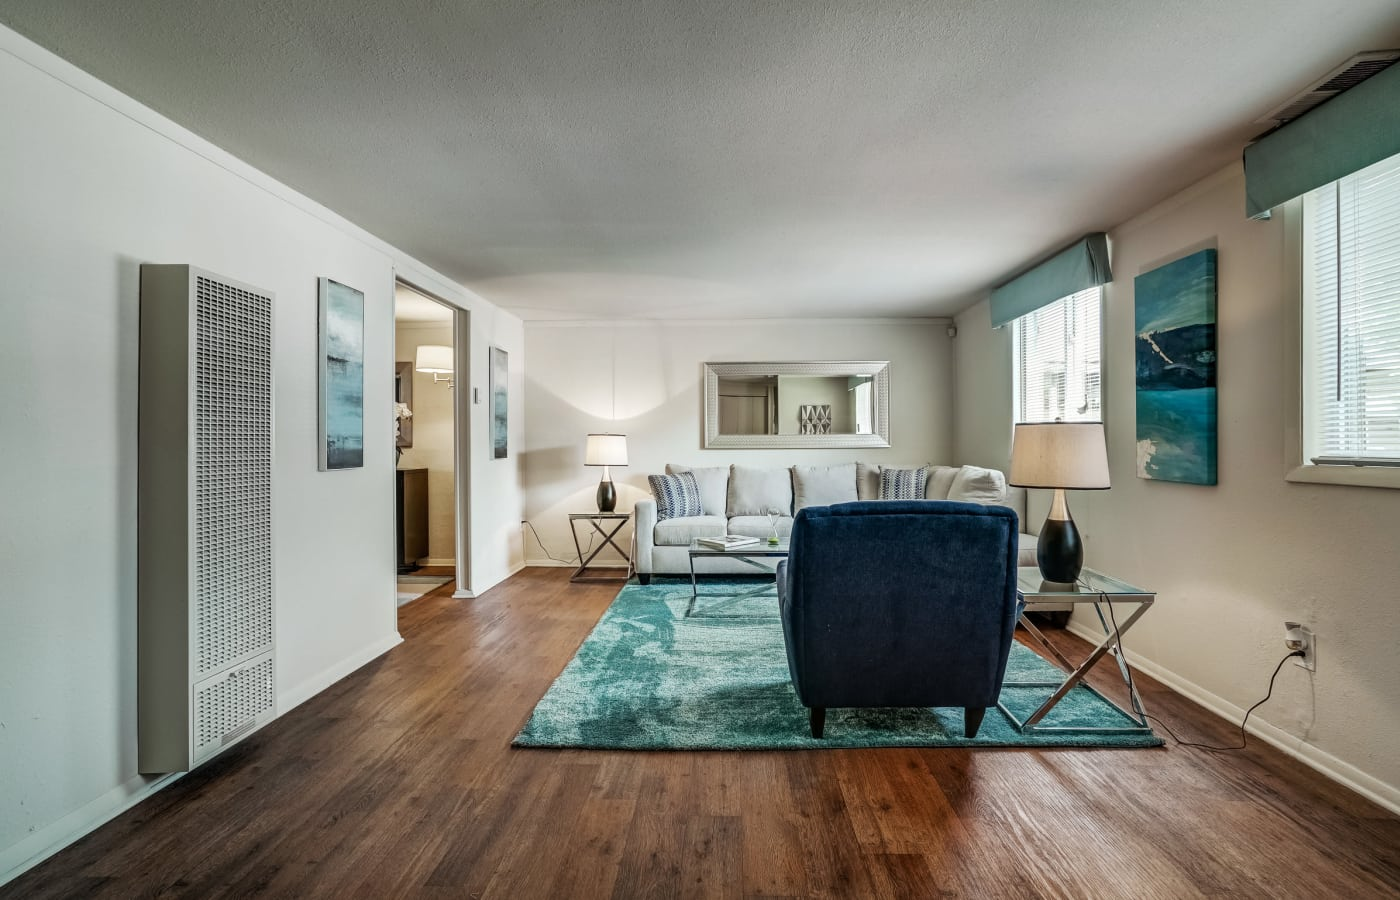 Interior view of model townhome living room with hardwood floors at Avalon Townhomes in Hampton, VA